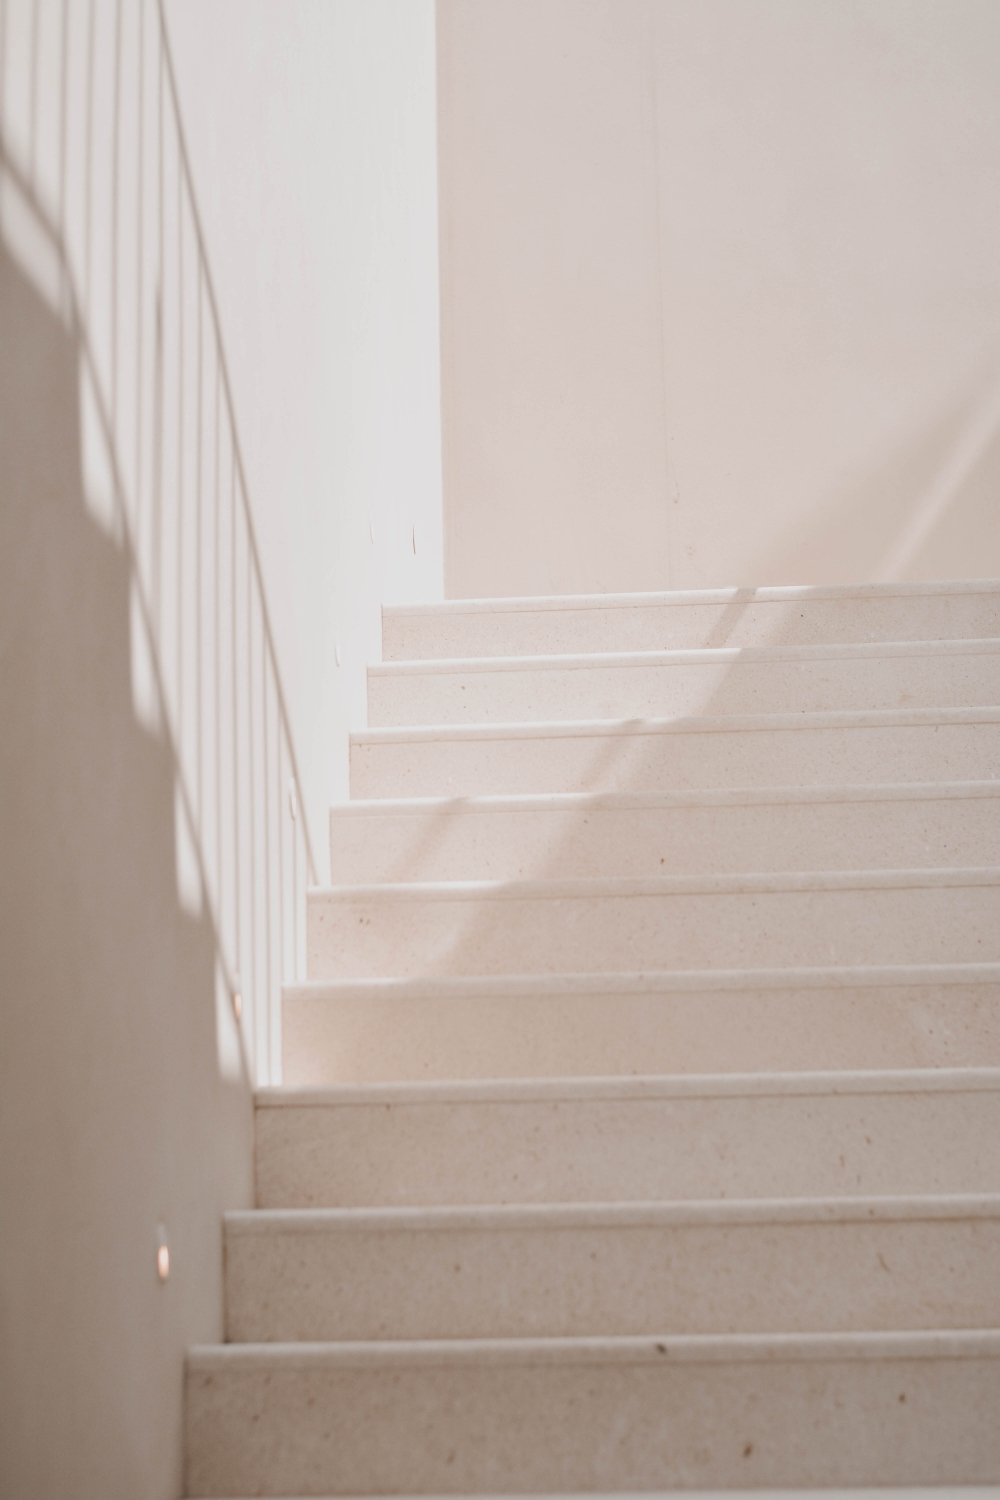 350 Staircase Pictures Download Free Images On Unsplash | White And Wood Stairs | Non Slip | Foyer | Simple | Solid Wood | Indoor